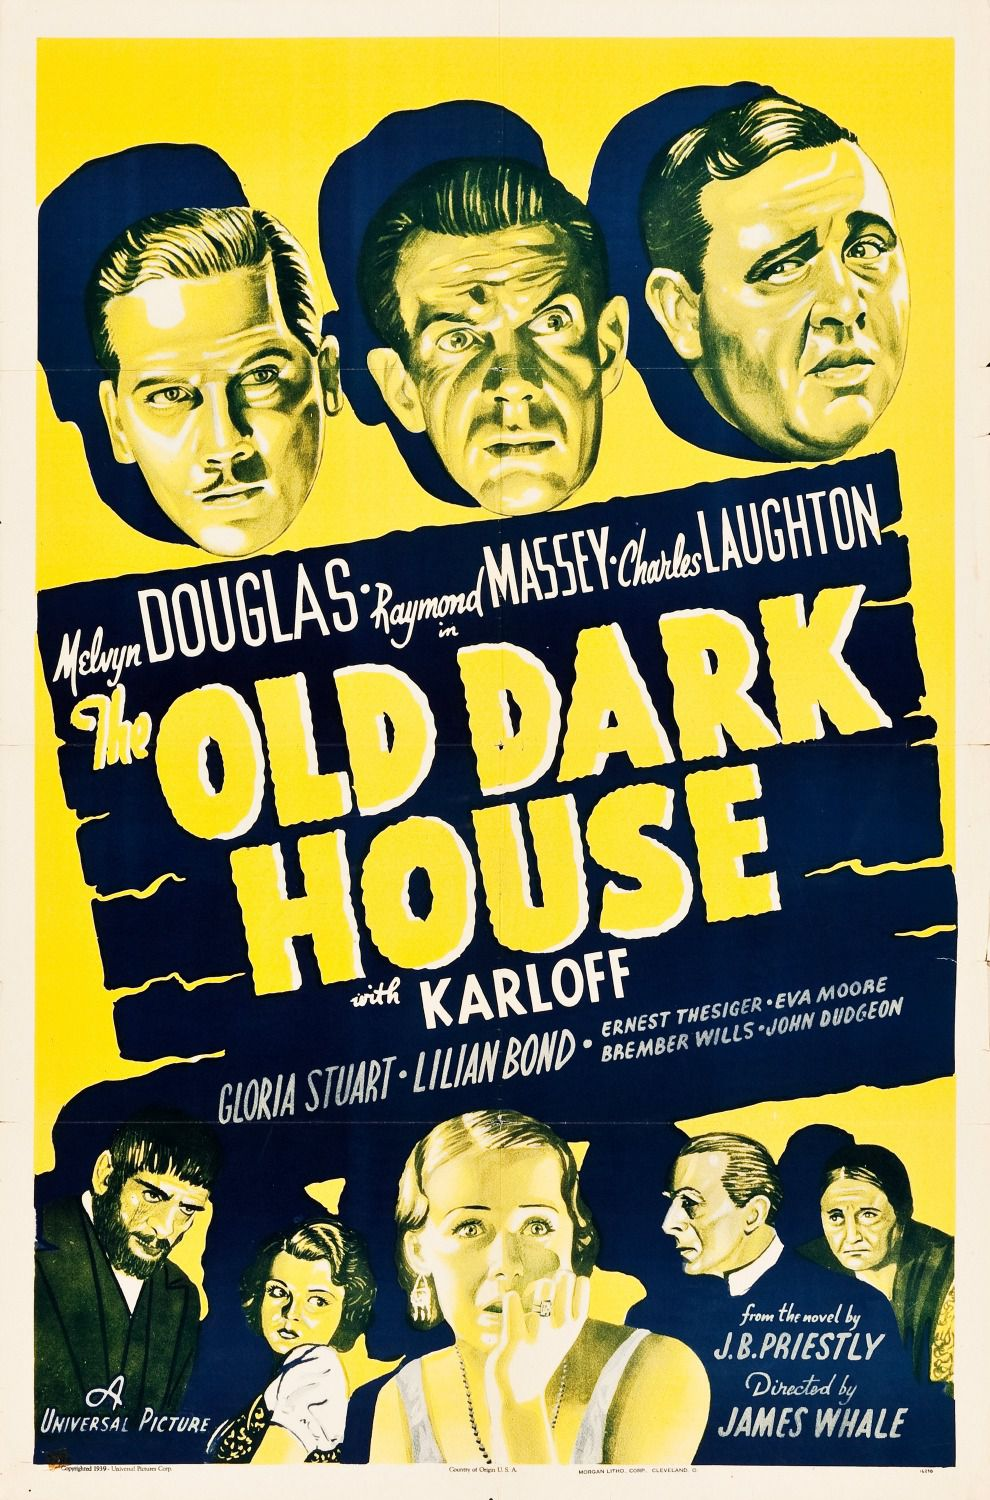 The Old Dark House - 1932 - Melvyn Douglas - Raymond Massey - Charles Laughton - Gloria Stuart - Lilian Bond - Ernest Thesiger - Eva Moore - Brember Wills - John Dudgeon - directed by James Whale - old film poster